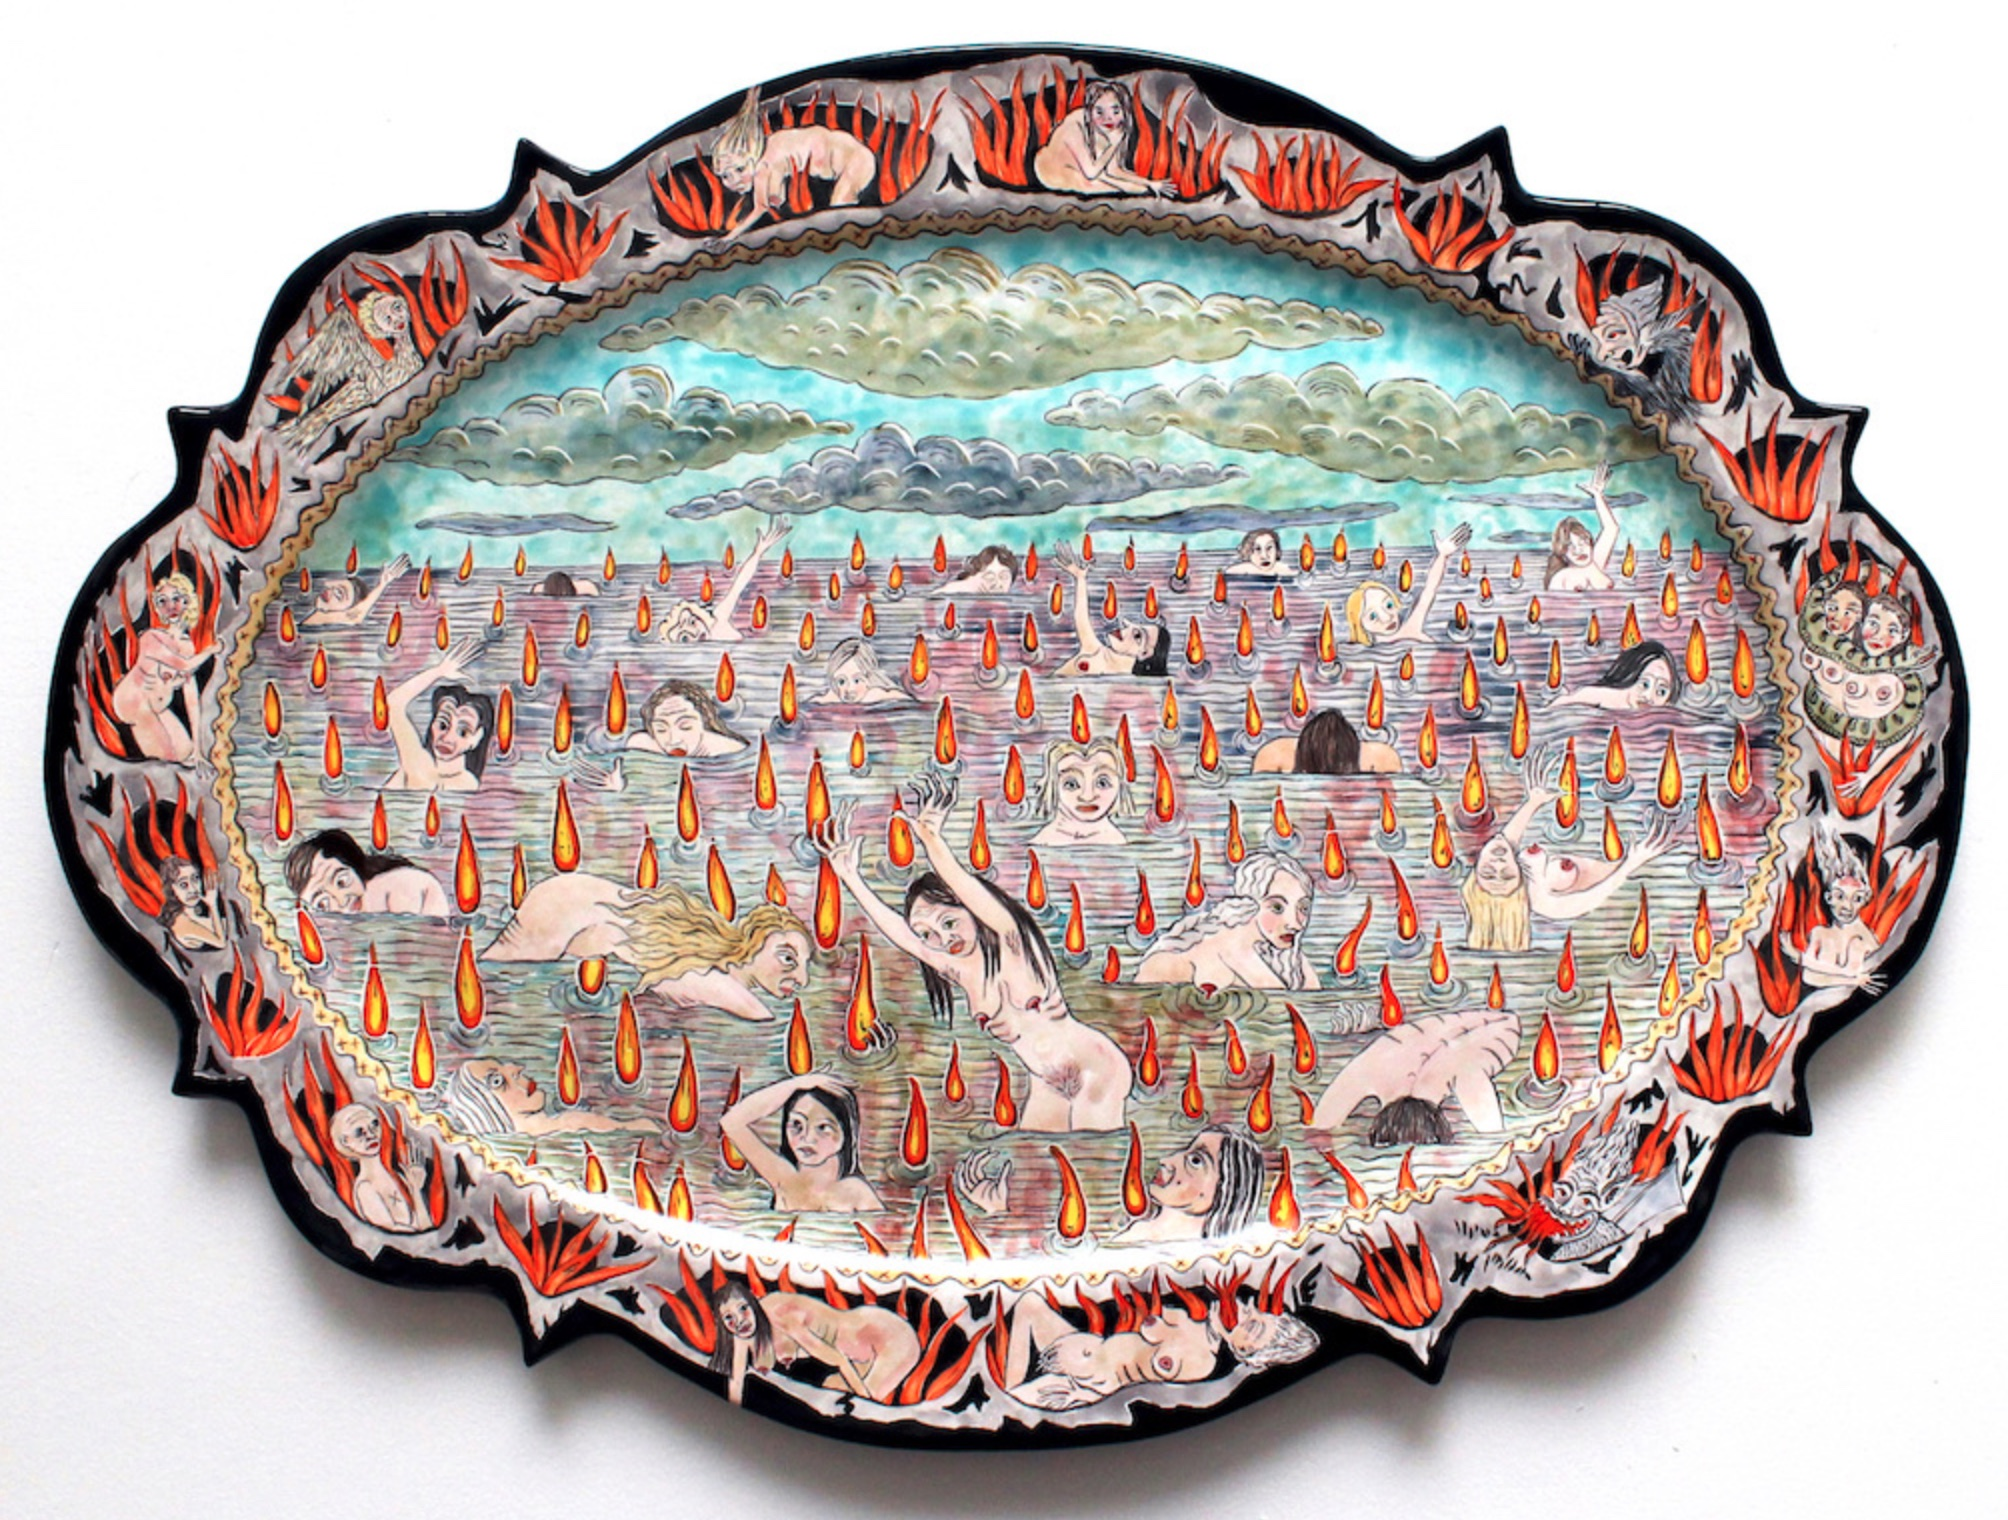 Lindsay Montgomery Majolica Plate: Lake of Fire (White Women Elected Trump), 2017